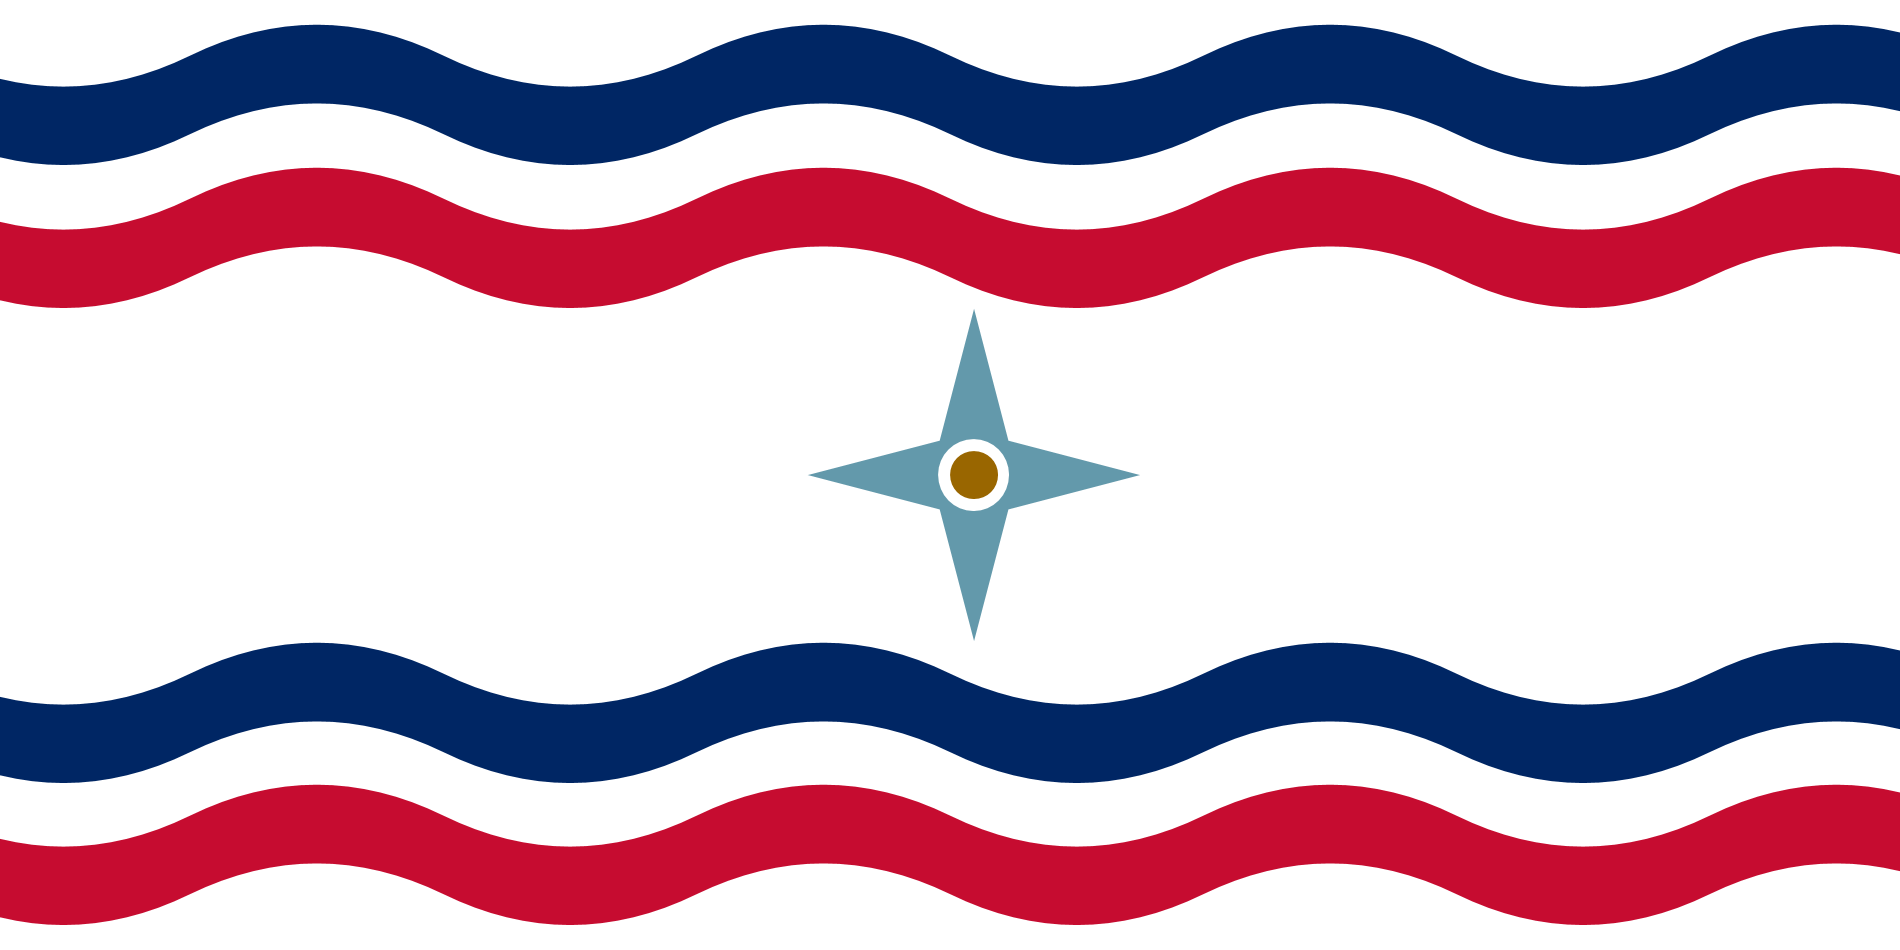 A redesign of the Assyrian flag : vexillology.